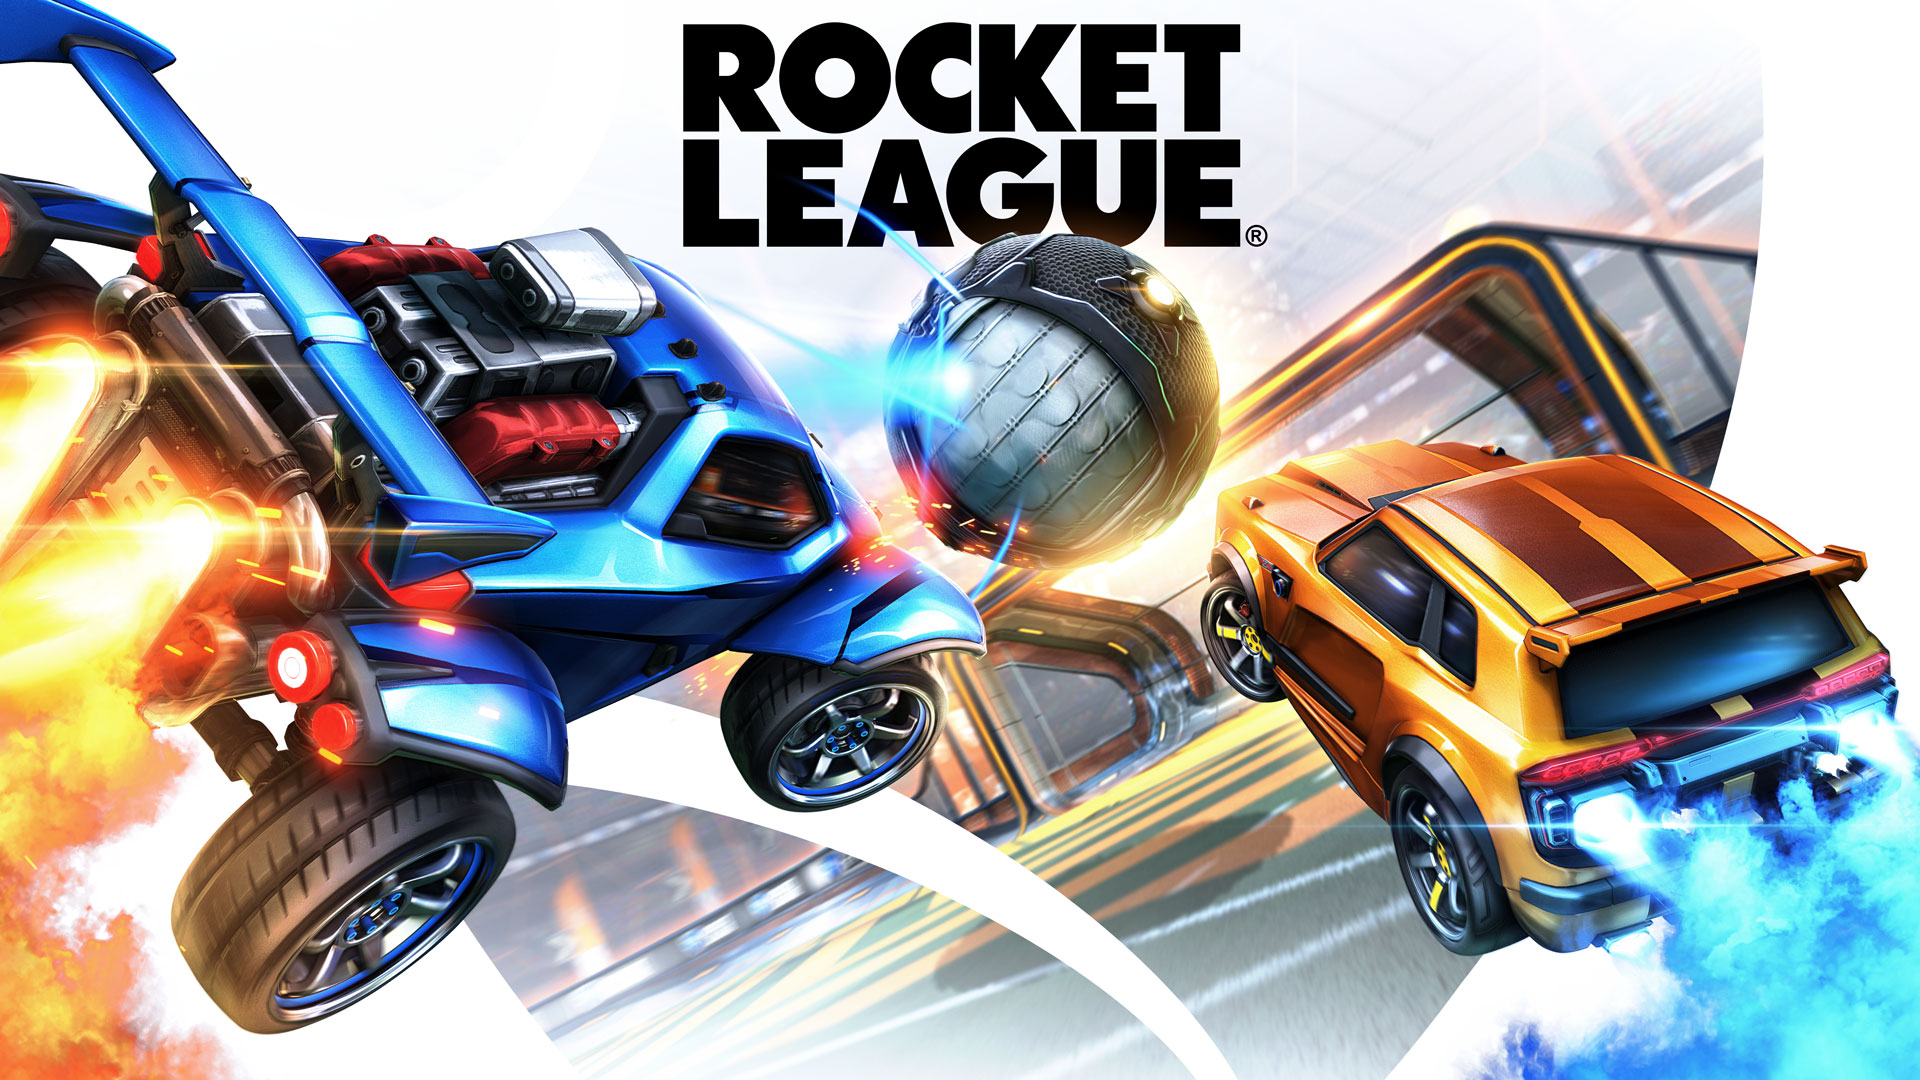 [FPS Benchmarks] Rocket League on NVIDIA GeForce RTX 3080 (130W) and RTX 3070 (130W) – the RTX 3080 won but the RTX 3070 is super-fast too